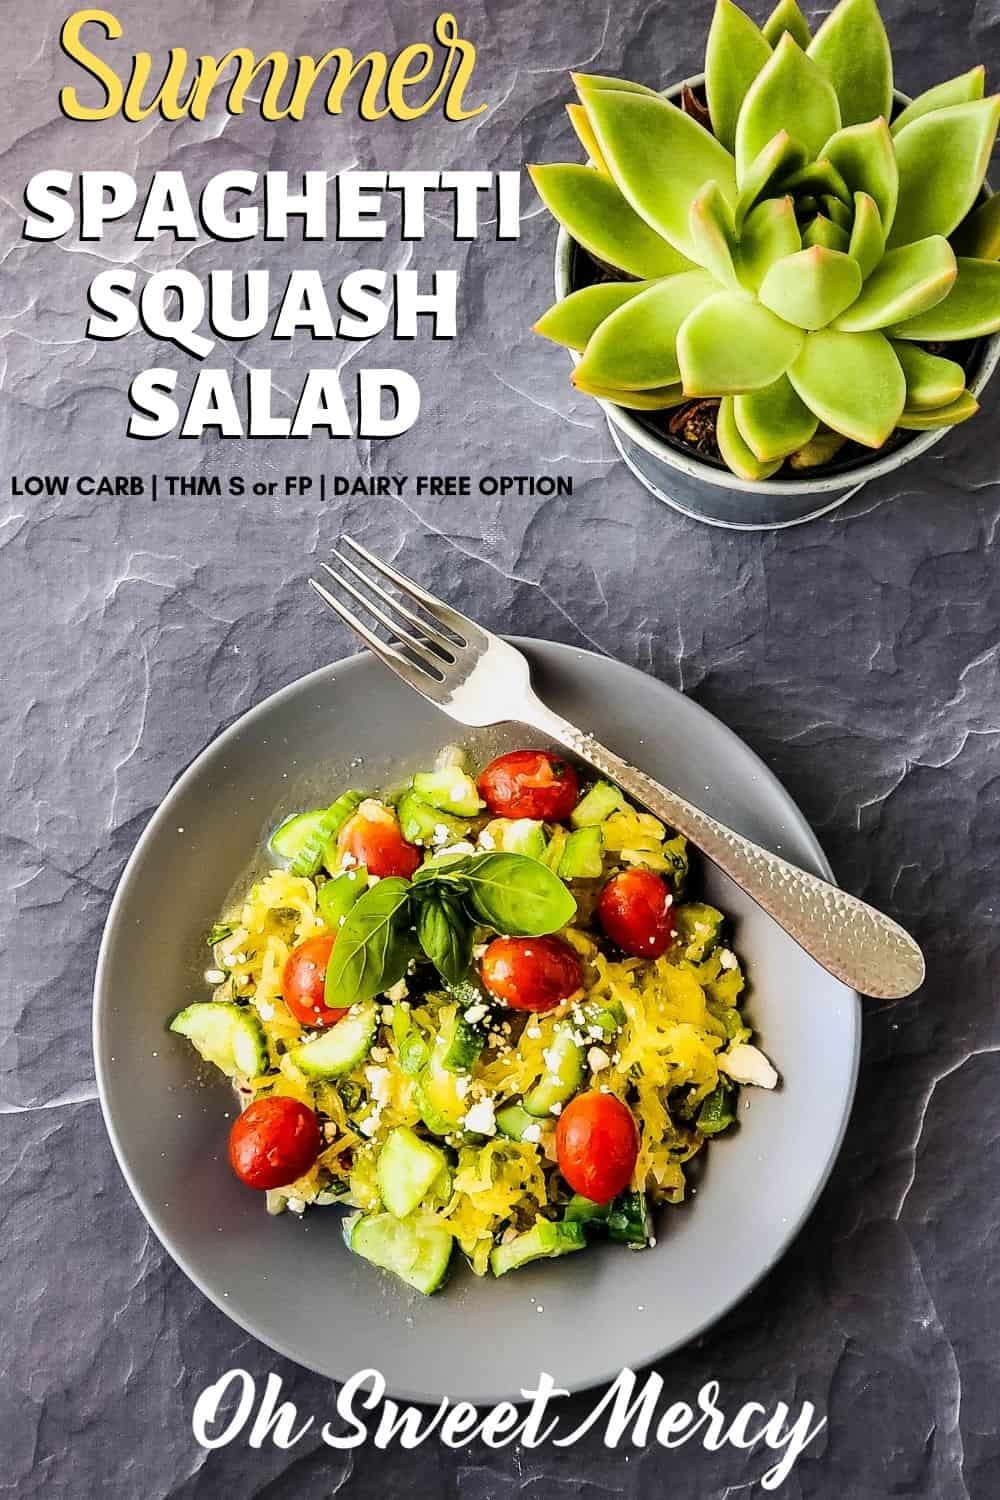 "My Summer Spaghetti Squash Salad combines the fresh taste of summer favorites and a tangy vinaigrette with spaghetti squash for a low carb ""pasta"" salad that's perfect alongside whatever comes off your grill. Dairy free option makes it vegan, too! Trim Healthy Mamas, you can enjoy as an S or a FP, too. #spaghettisquash #summersalads #lowcarb #healthyfats #pastasalad #thm @ohsweetmercy"